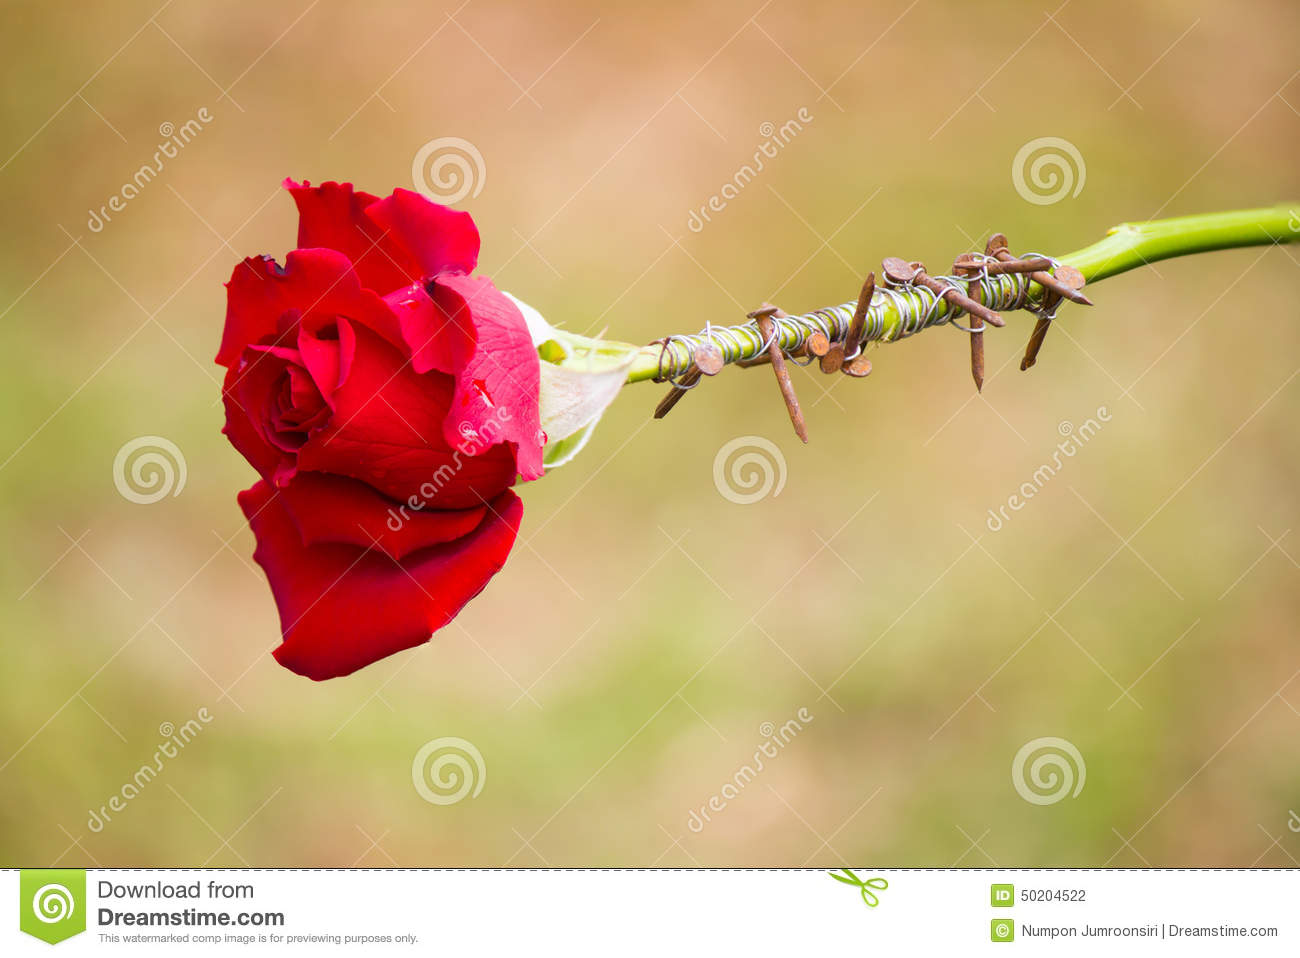 Thorns Wrapping Red Rose Stock Photo Image 50204522